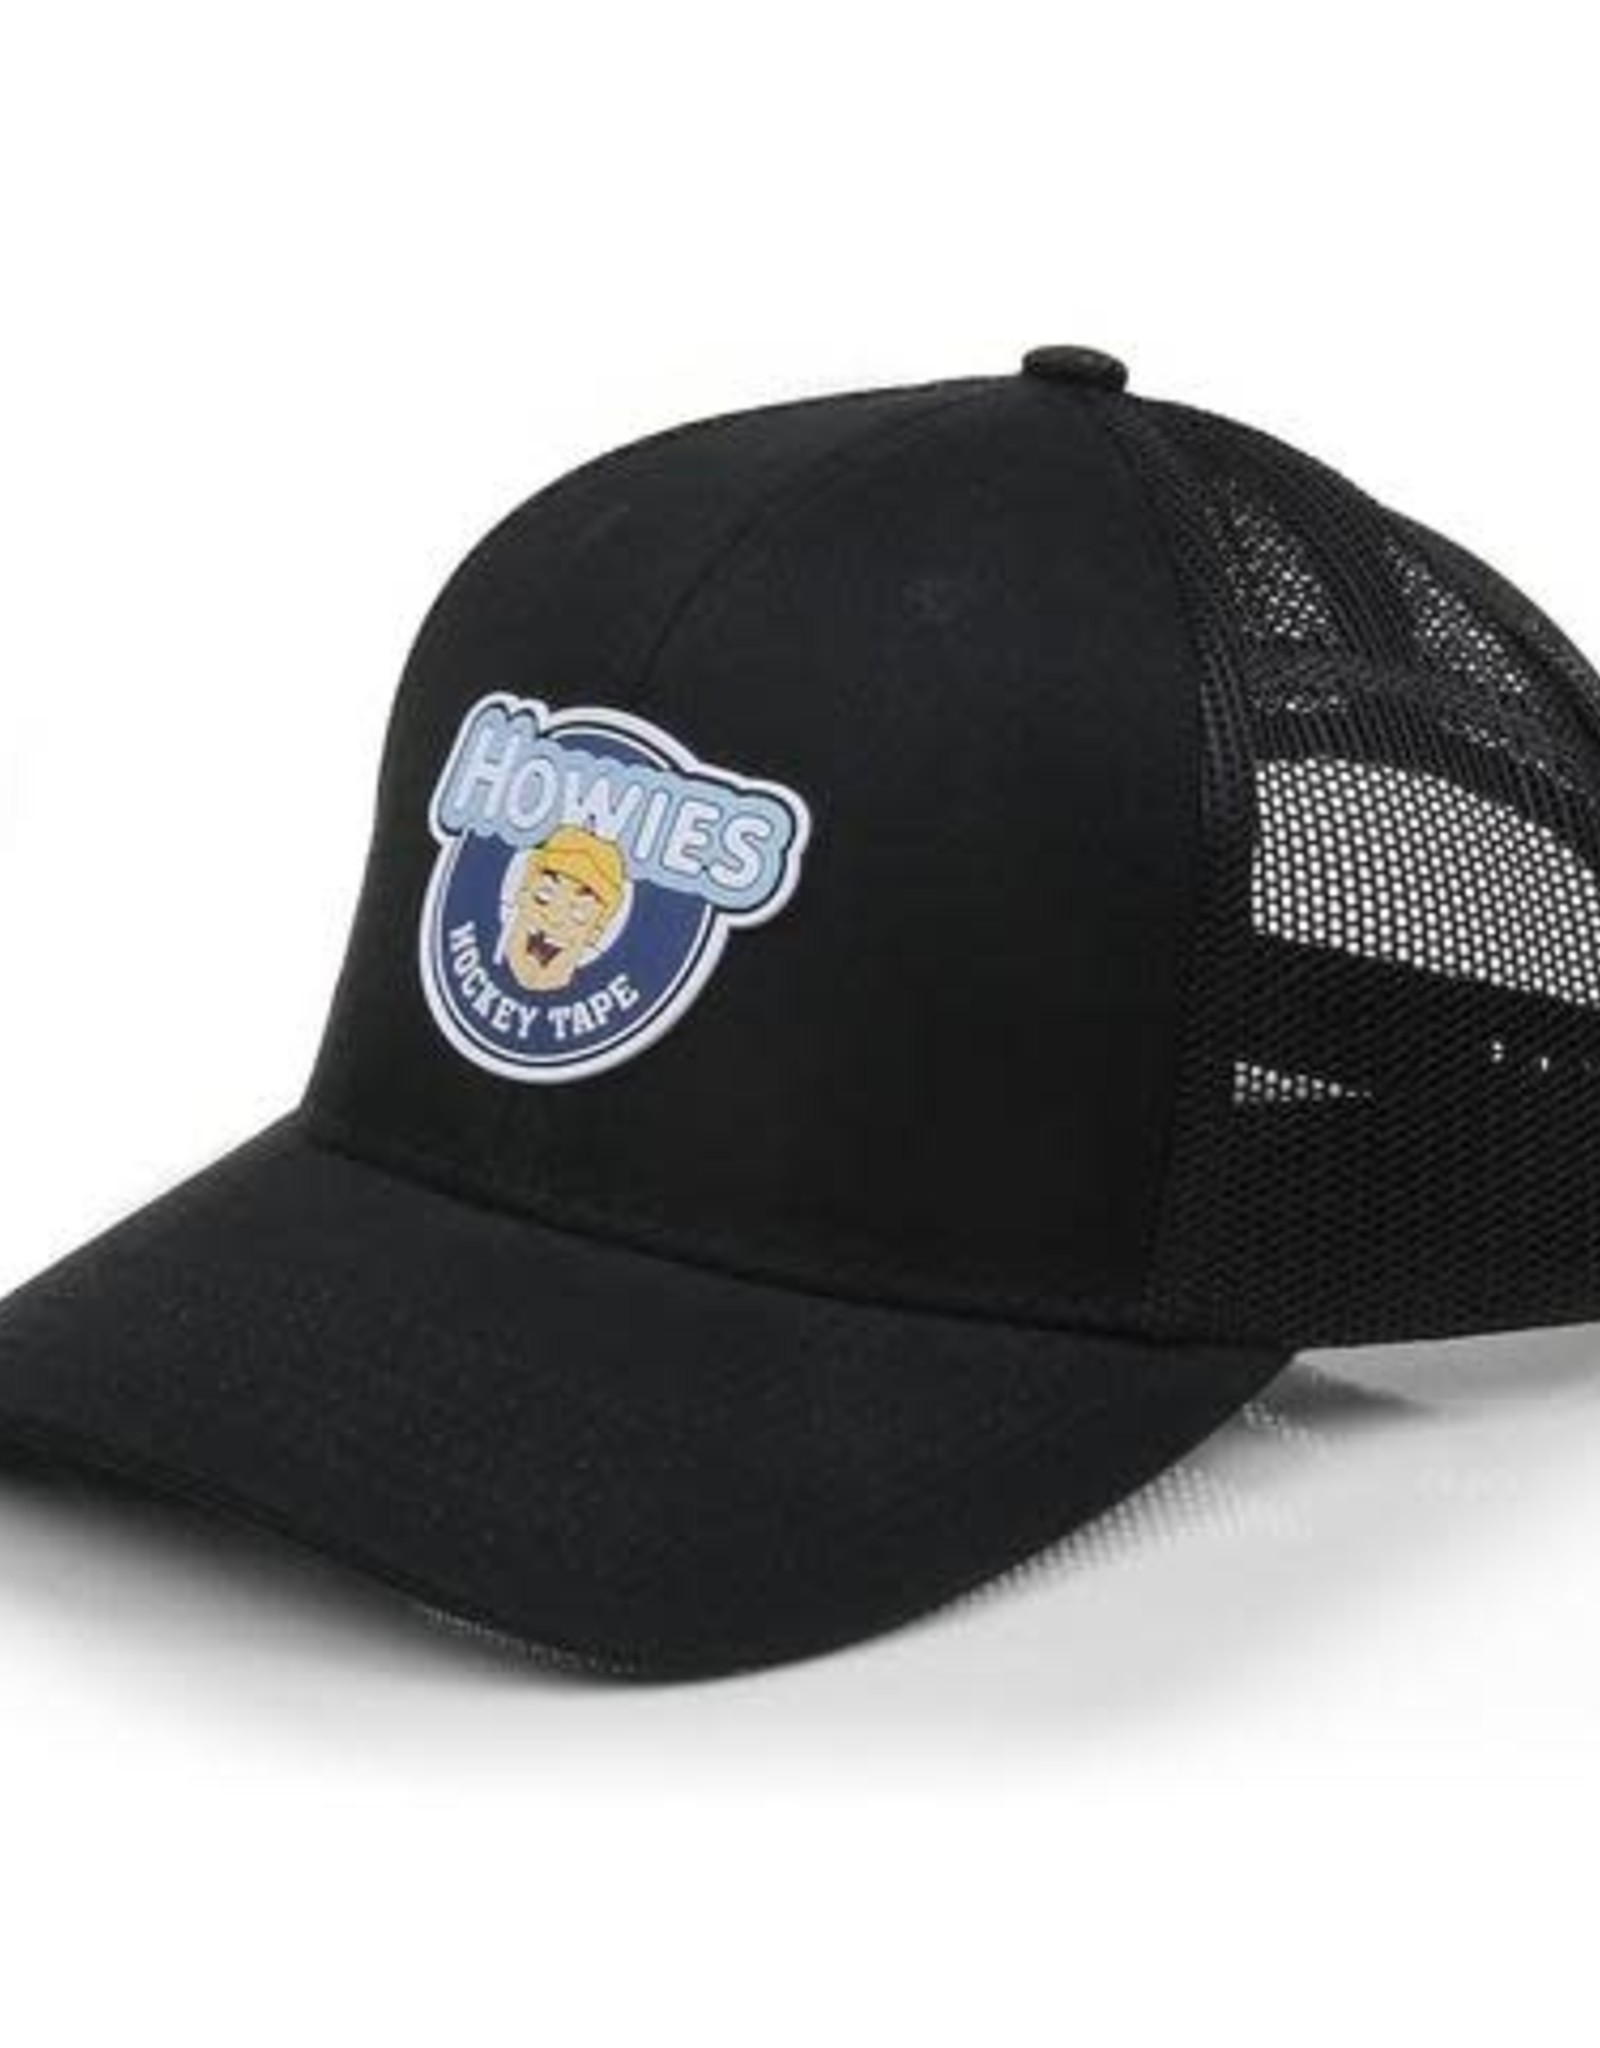 Howies The Lottery Pick Lid (BLACK)